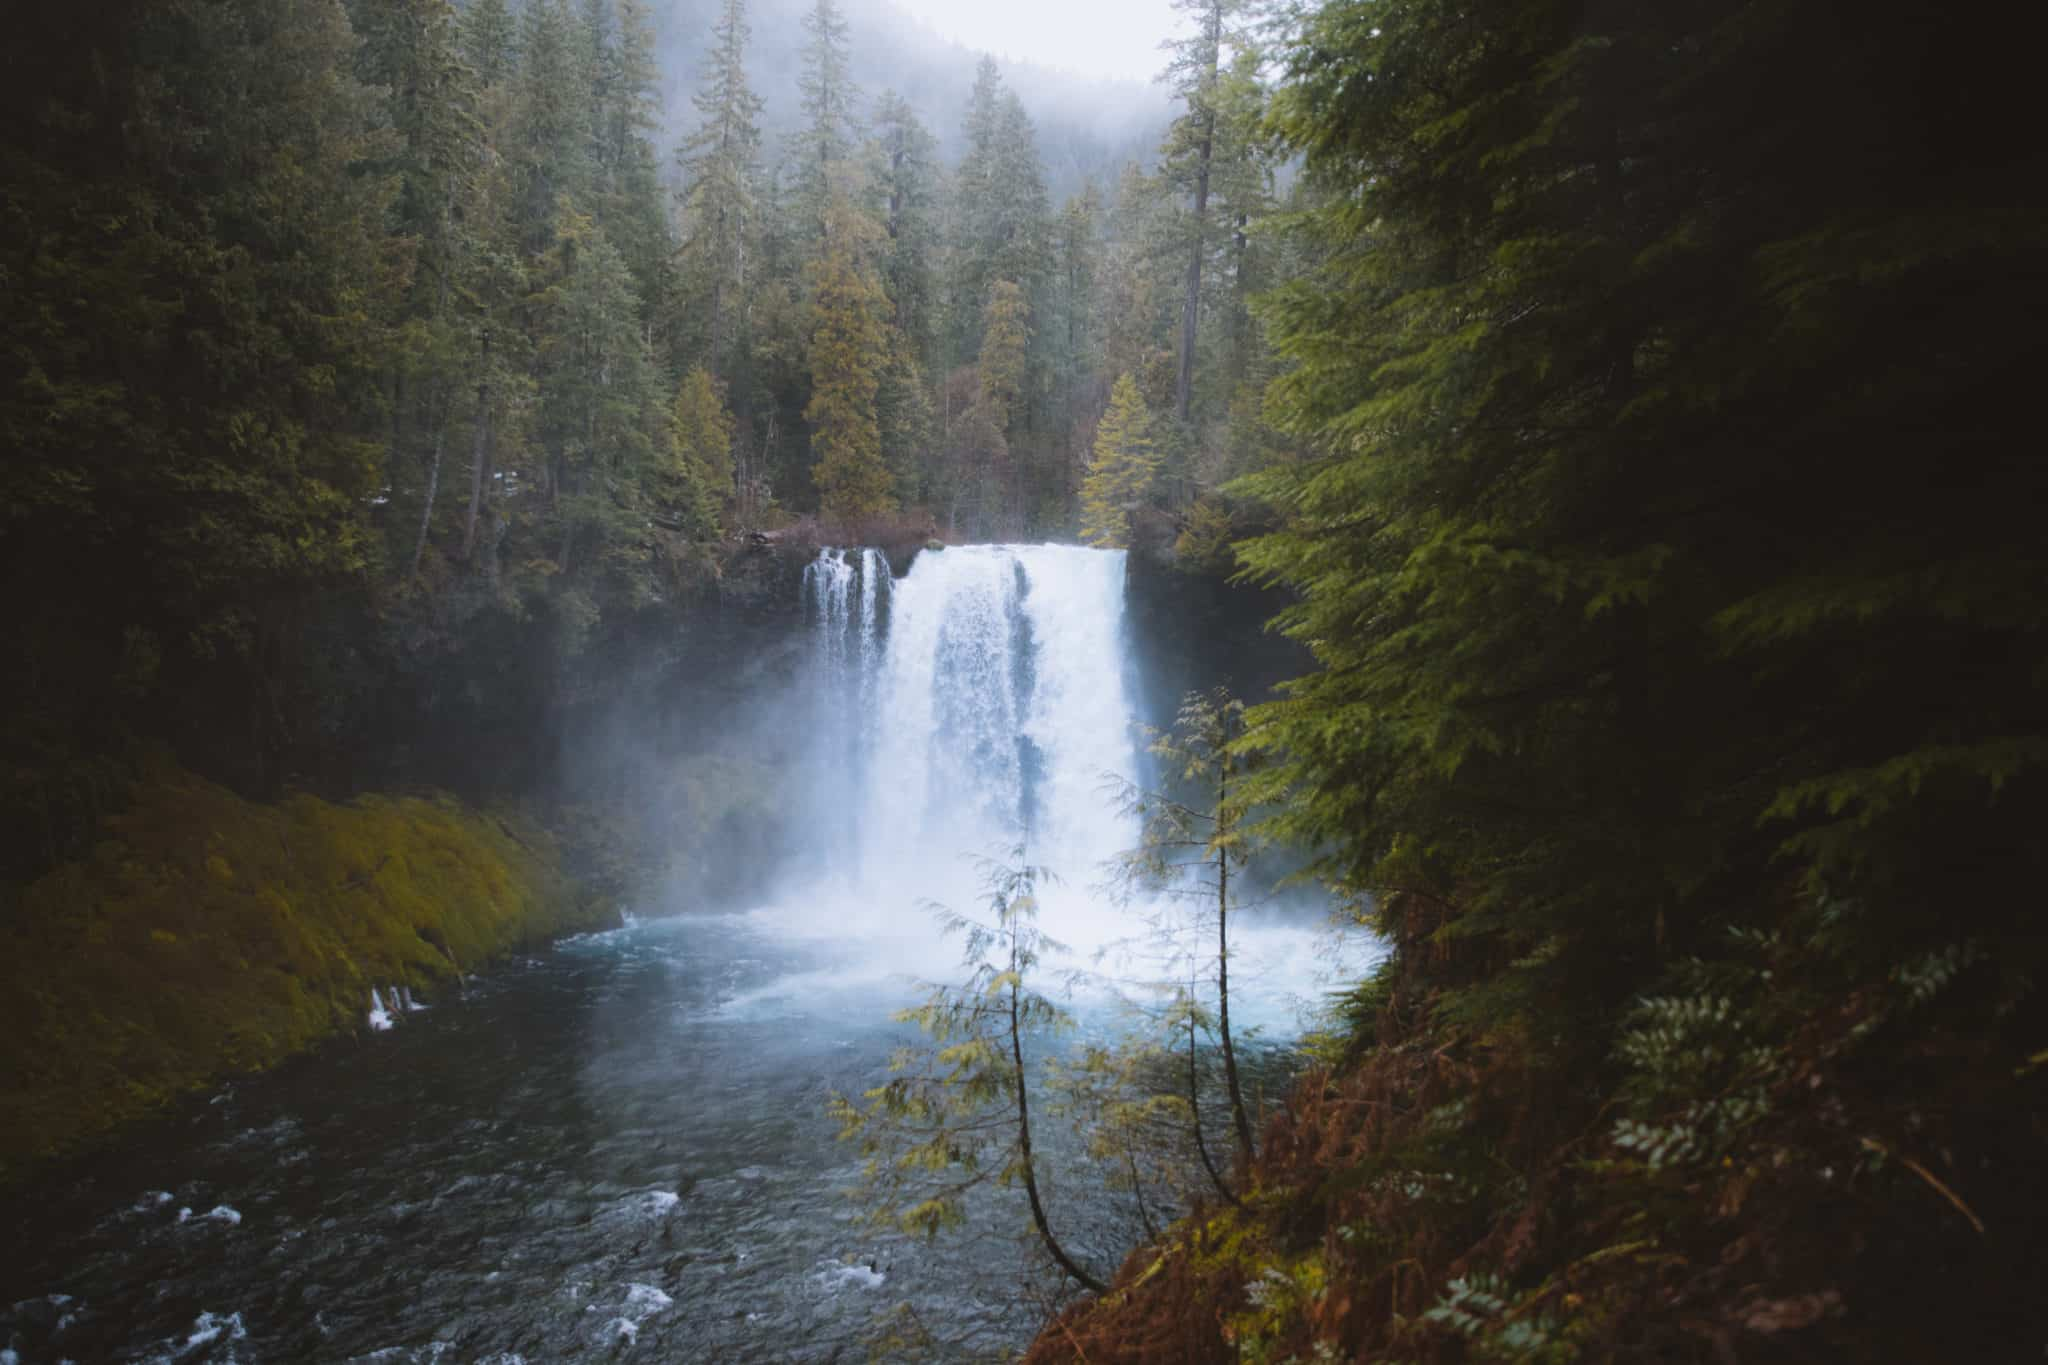 Waterfalls in Oregon - Koosah Falls